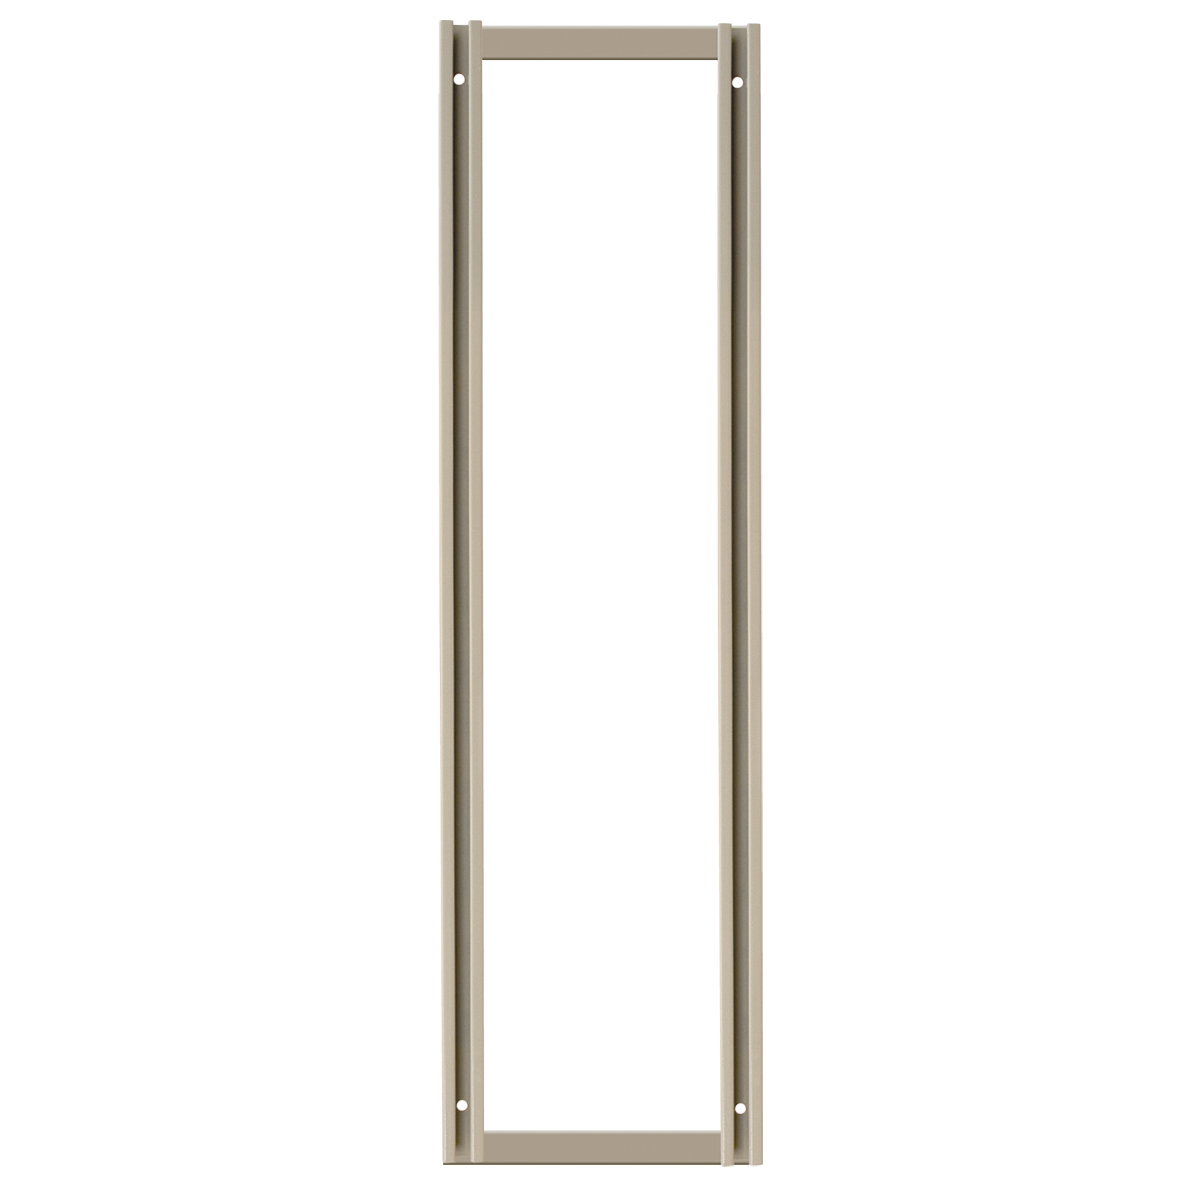 TiltView Frame, 48 x 13-1/4, Beige (TV48F).  This item sold in carton quantities of 1.